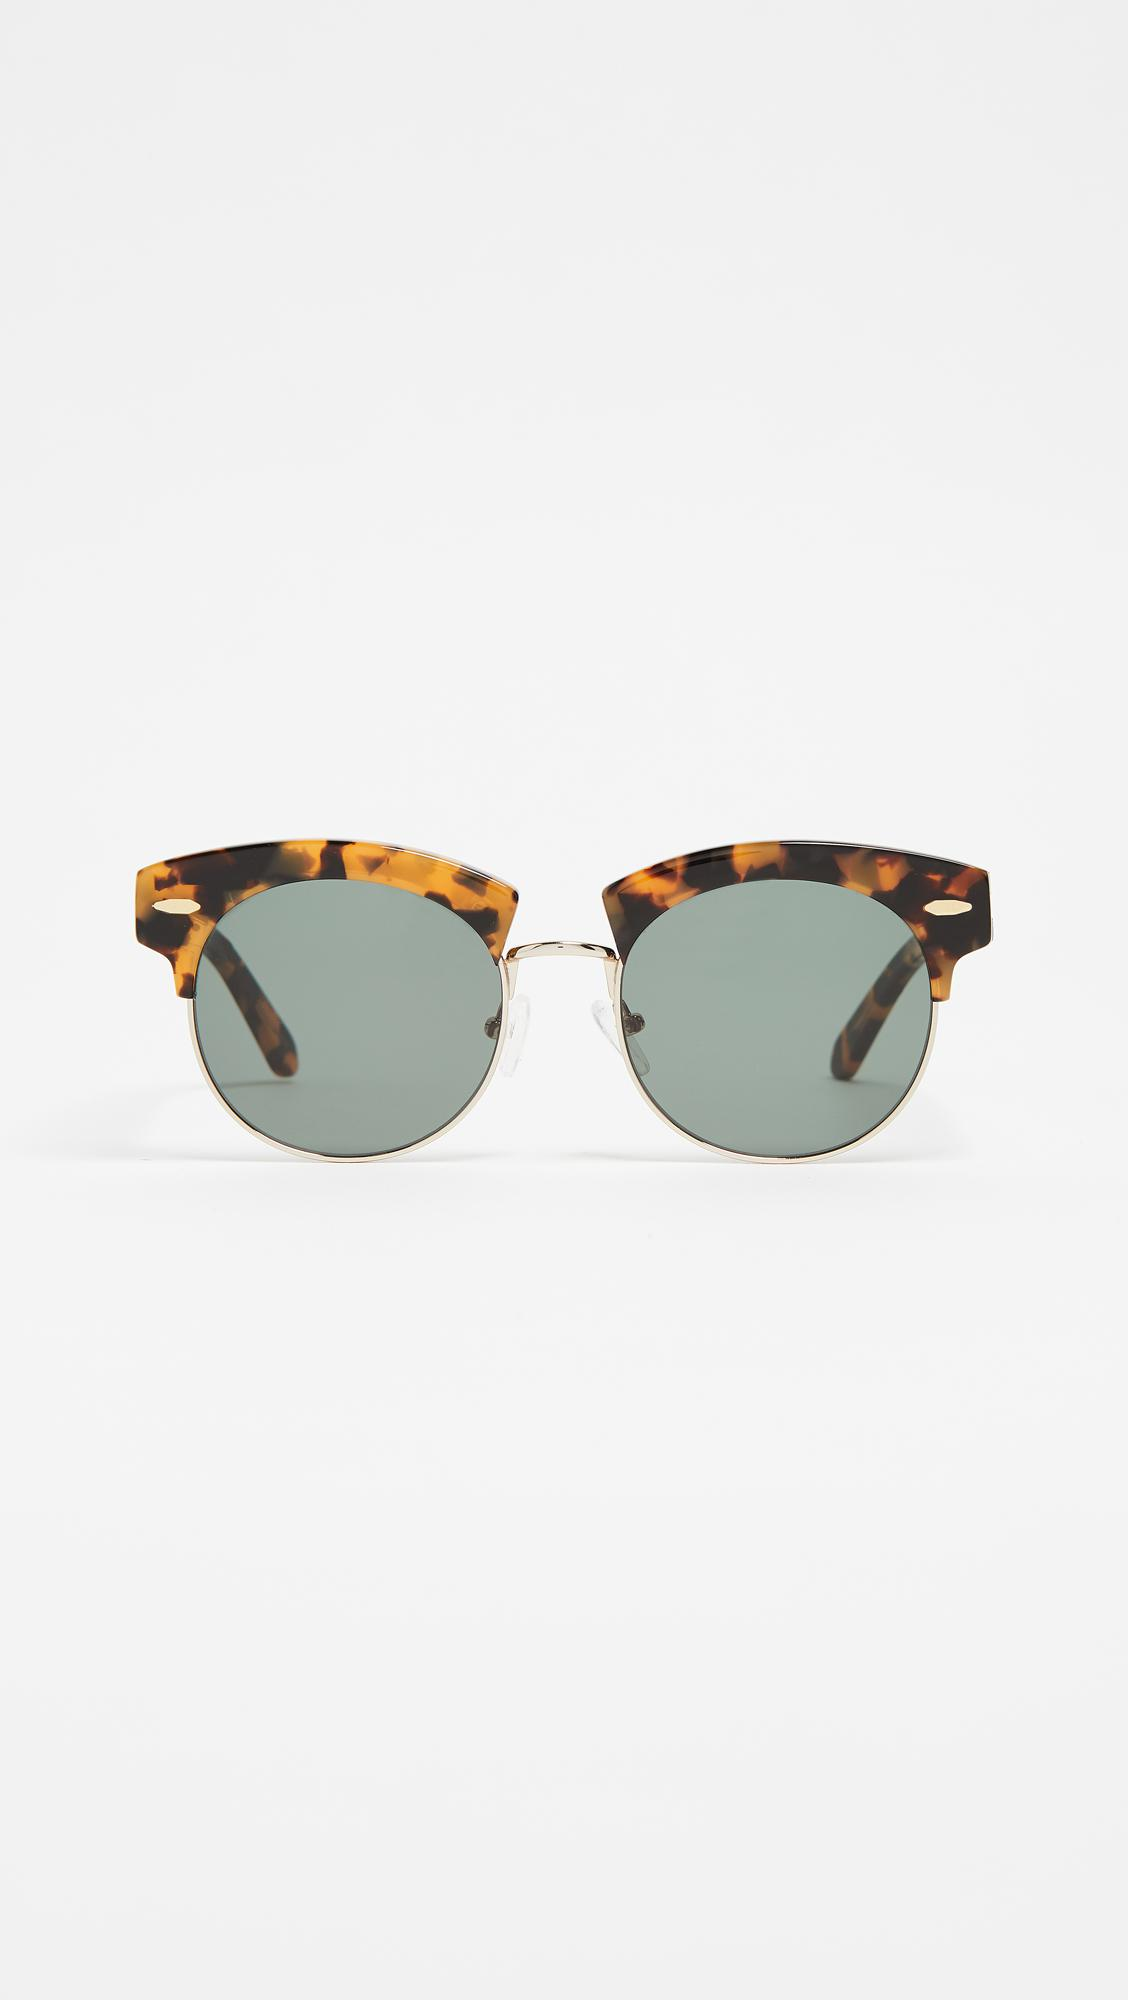 The Constable Round Acetate Sunglasses Karen Walker mgcCL4ut